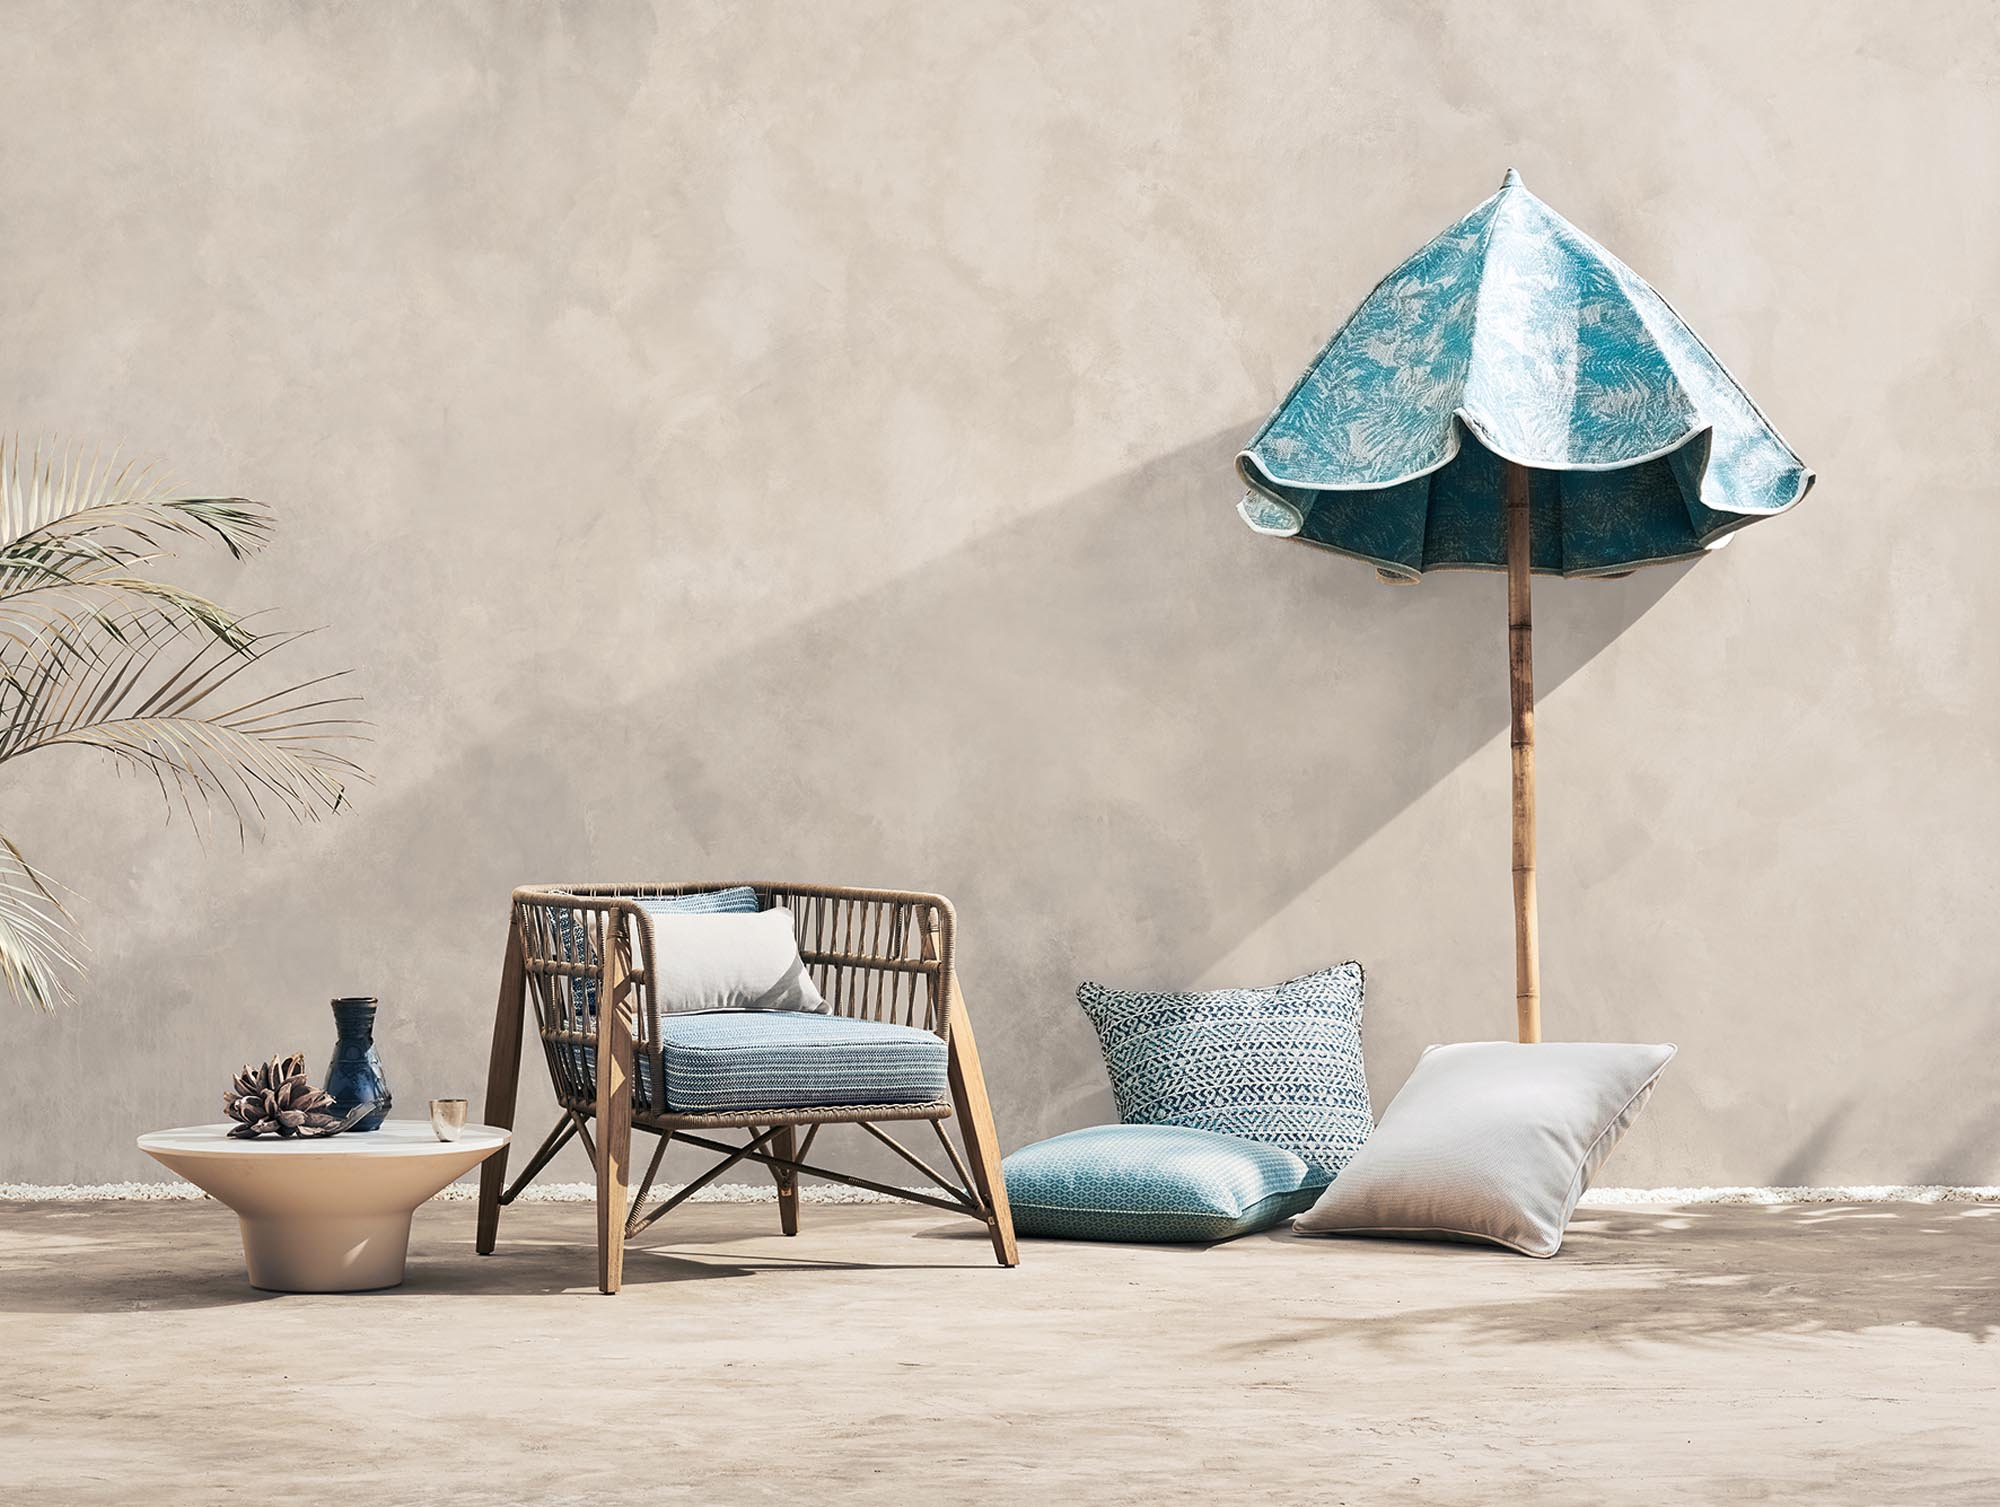 1. ADDED Romo_Outdoor_Shot 31_Chair_&_Parasol_Main_803b_HR.jpg